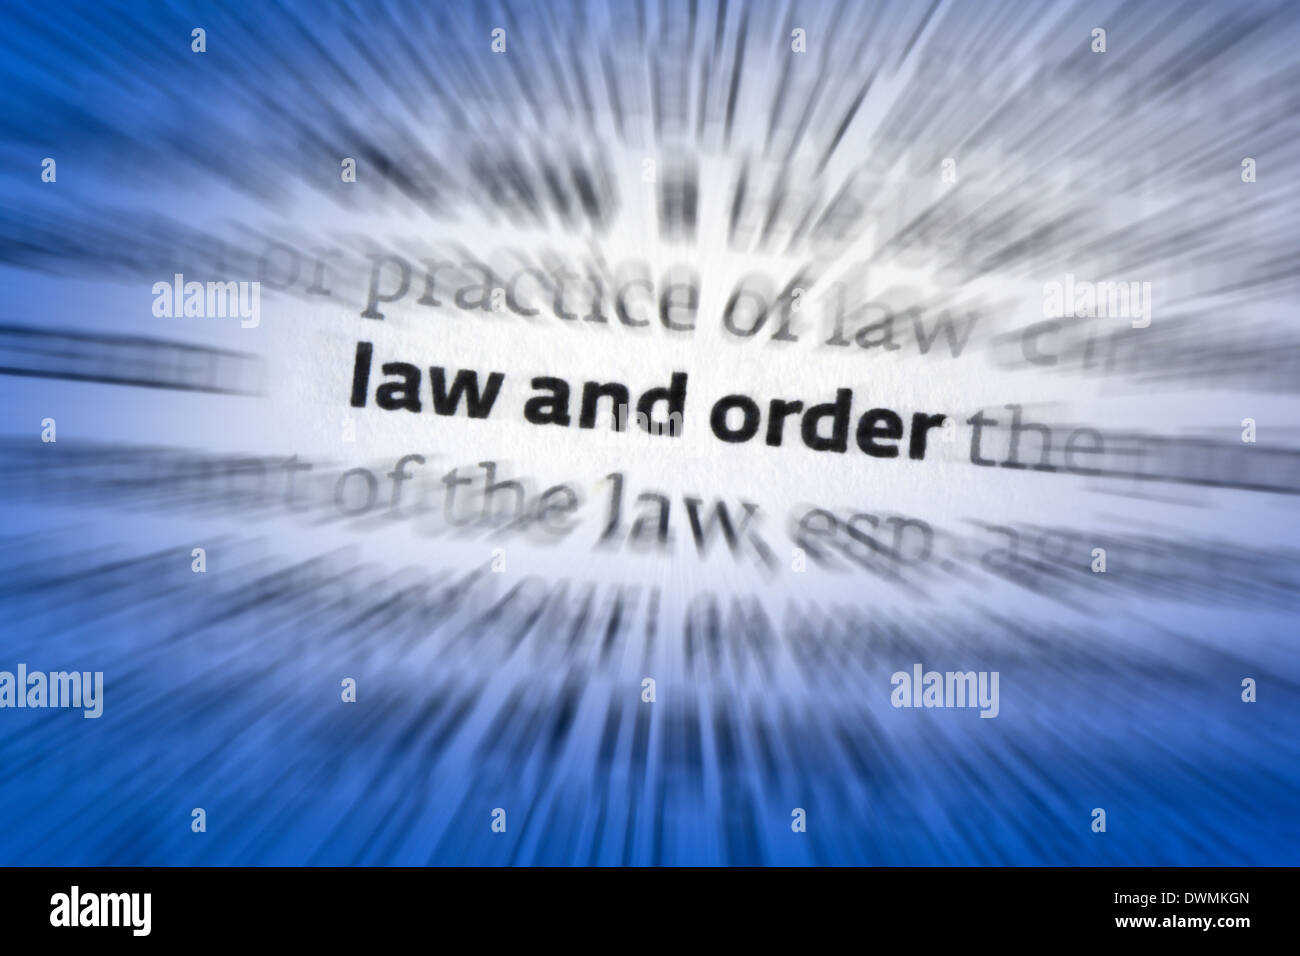 Law and Order - Stock Image